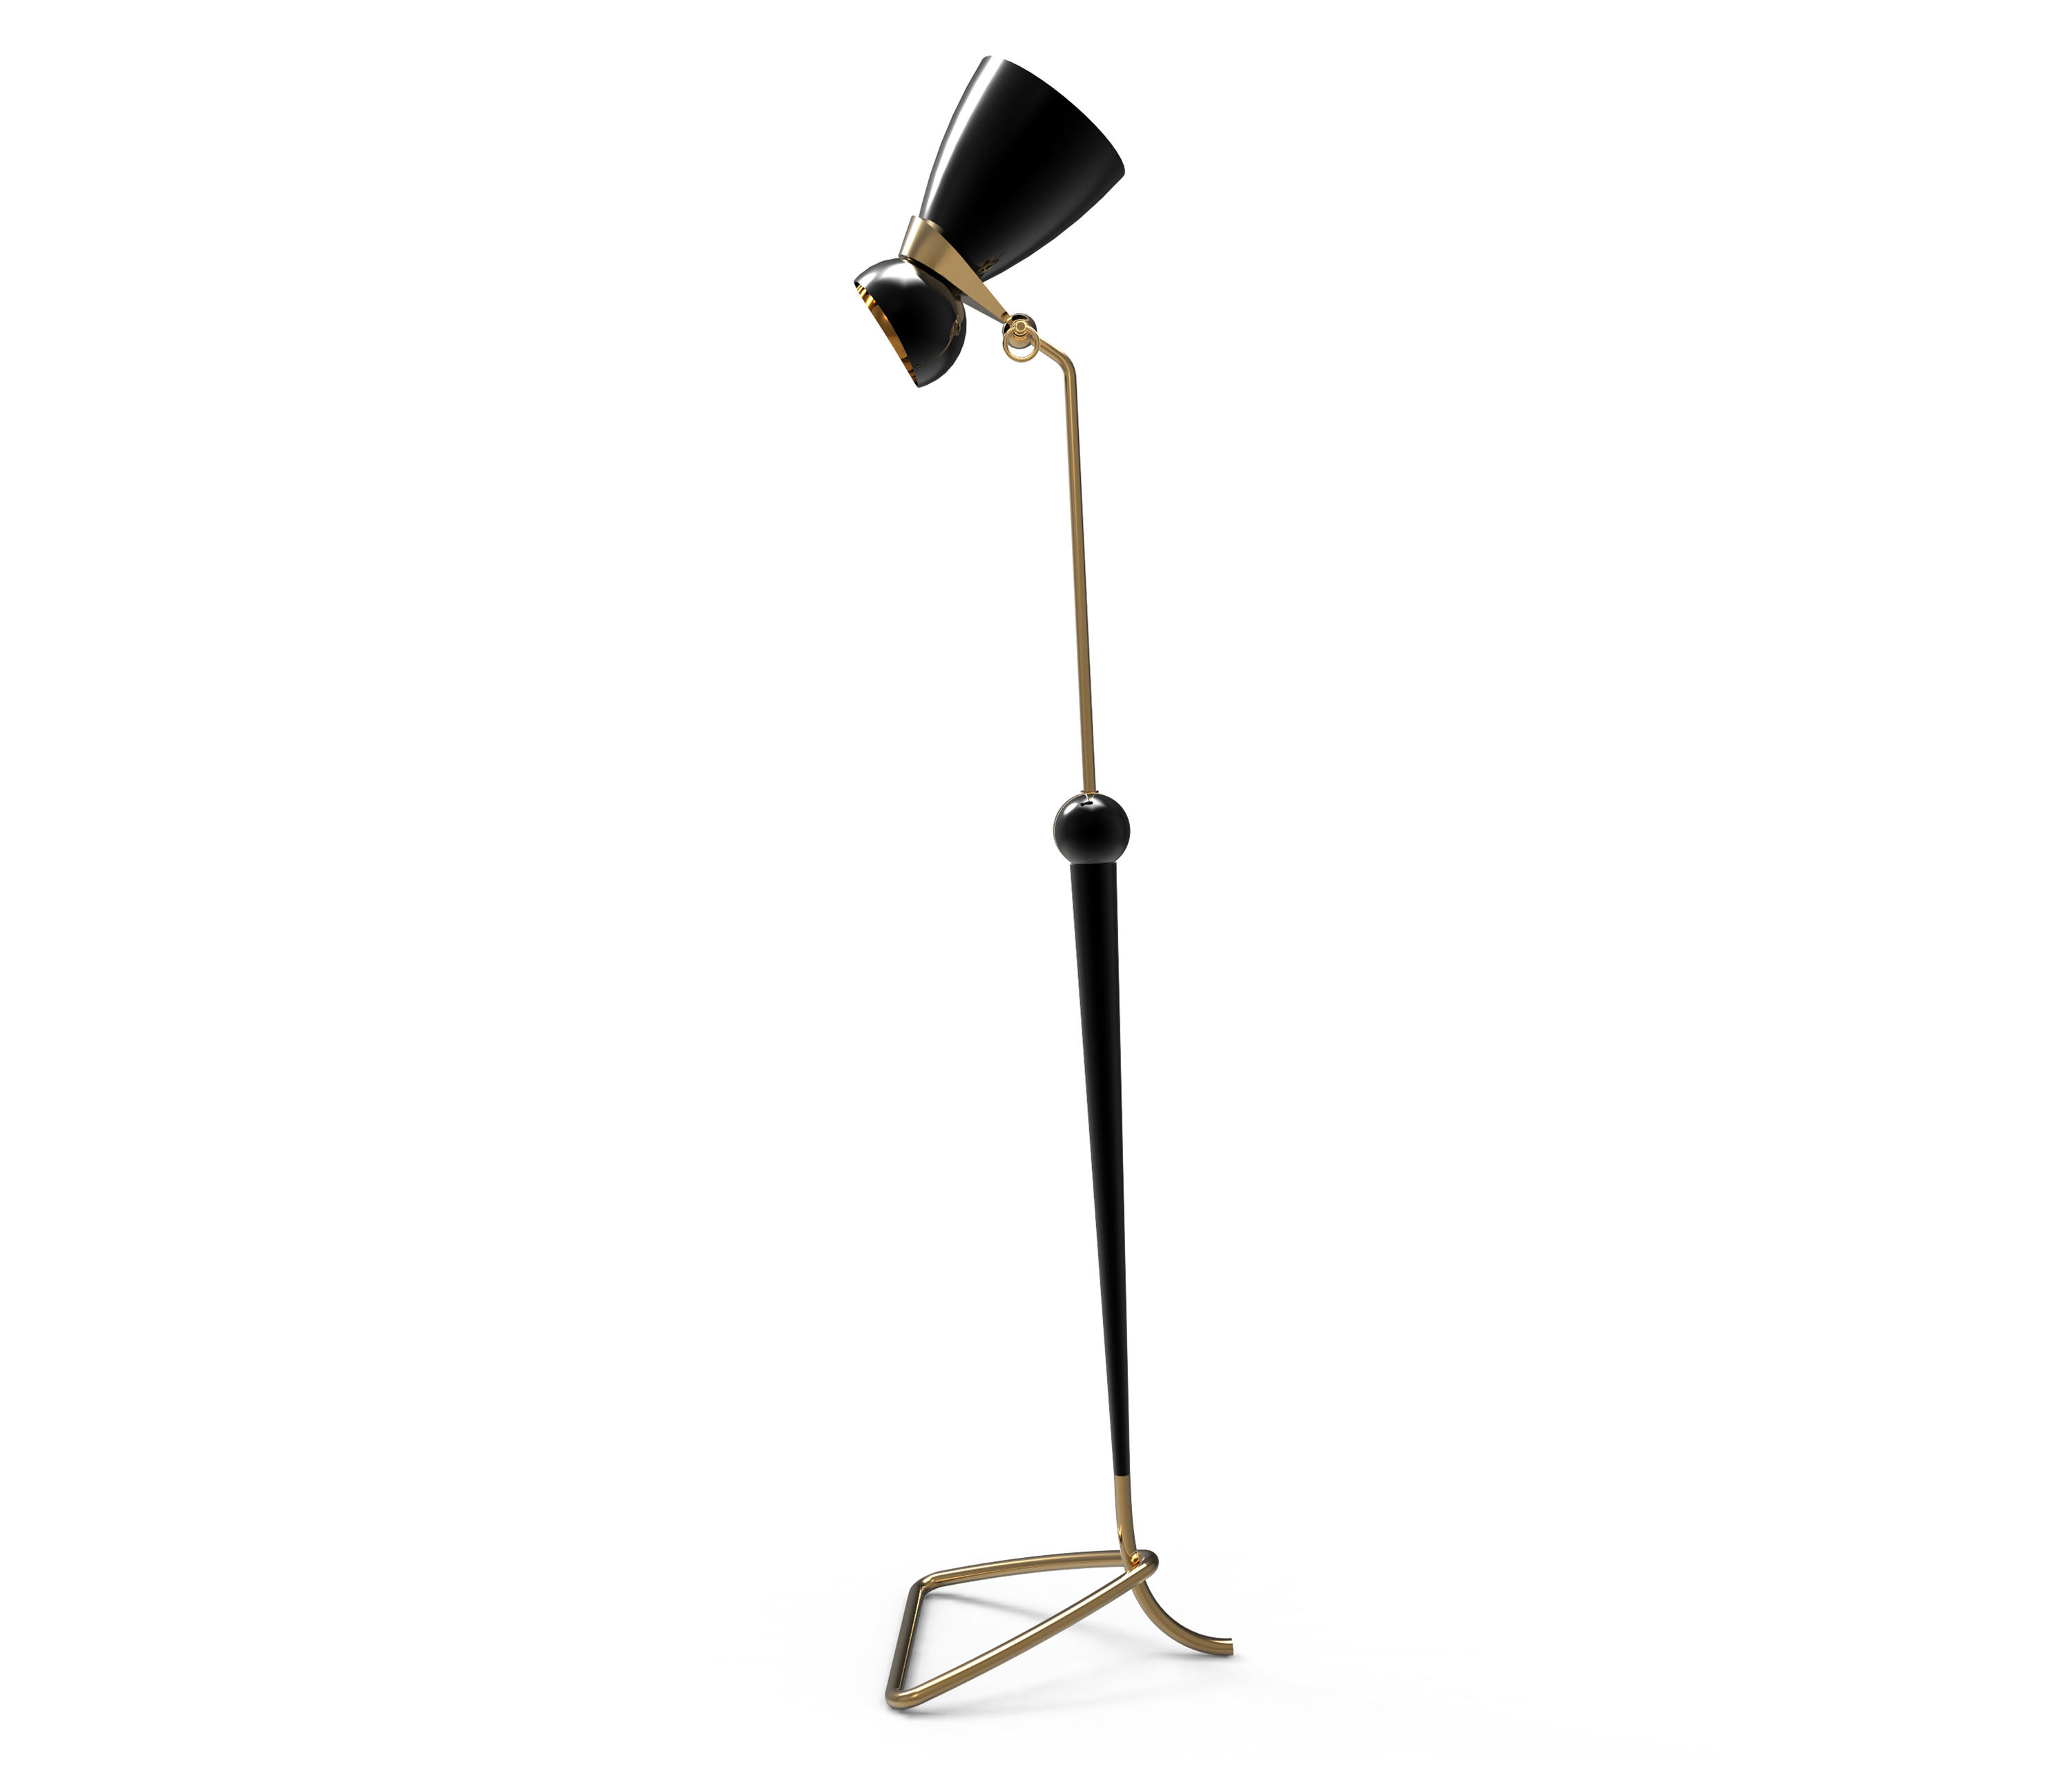 Summer Sales: This Vintage Floor Lamp Has To Be Yours! vintage floor lamp Open Floor Plan: This Vintage Floor Lamp Has To Be Yours! 1 4